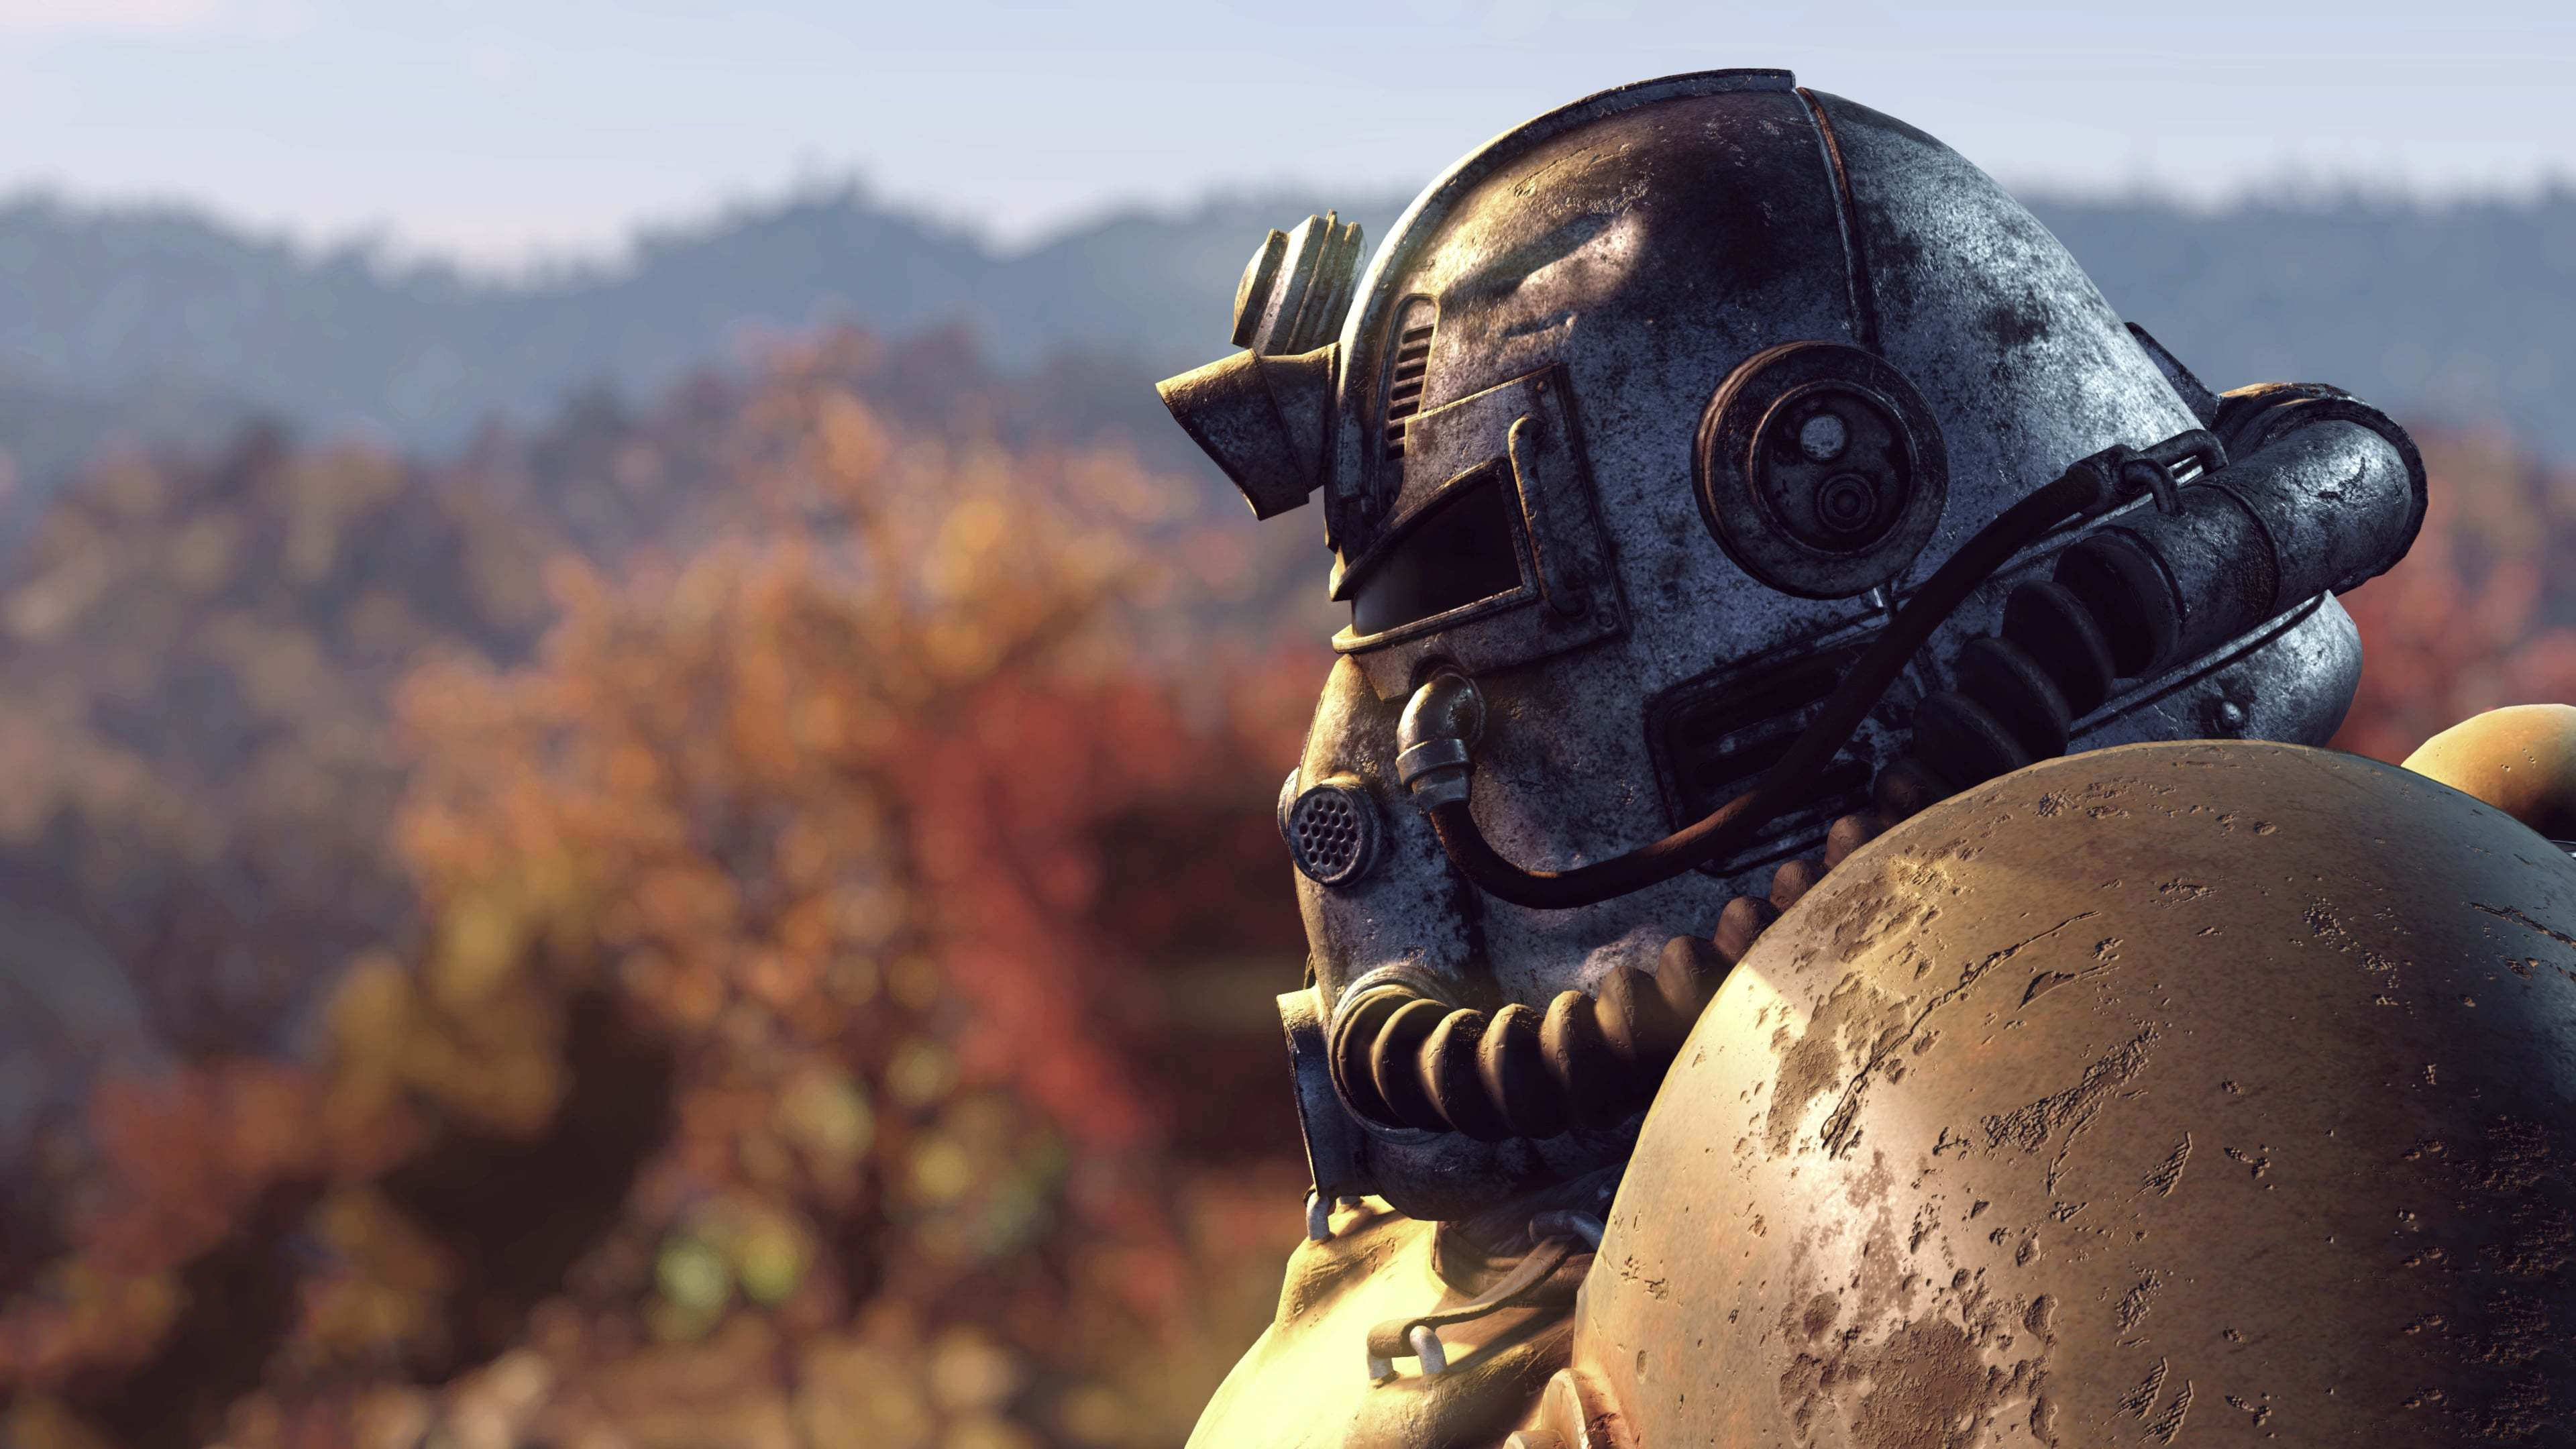 fallout 2019 1568056286 - Fallout 2019 - hd-wallpapers, games wallpapers, fallout wallpapers, 4k-wallpapers